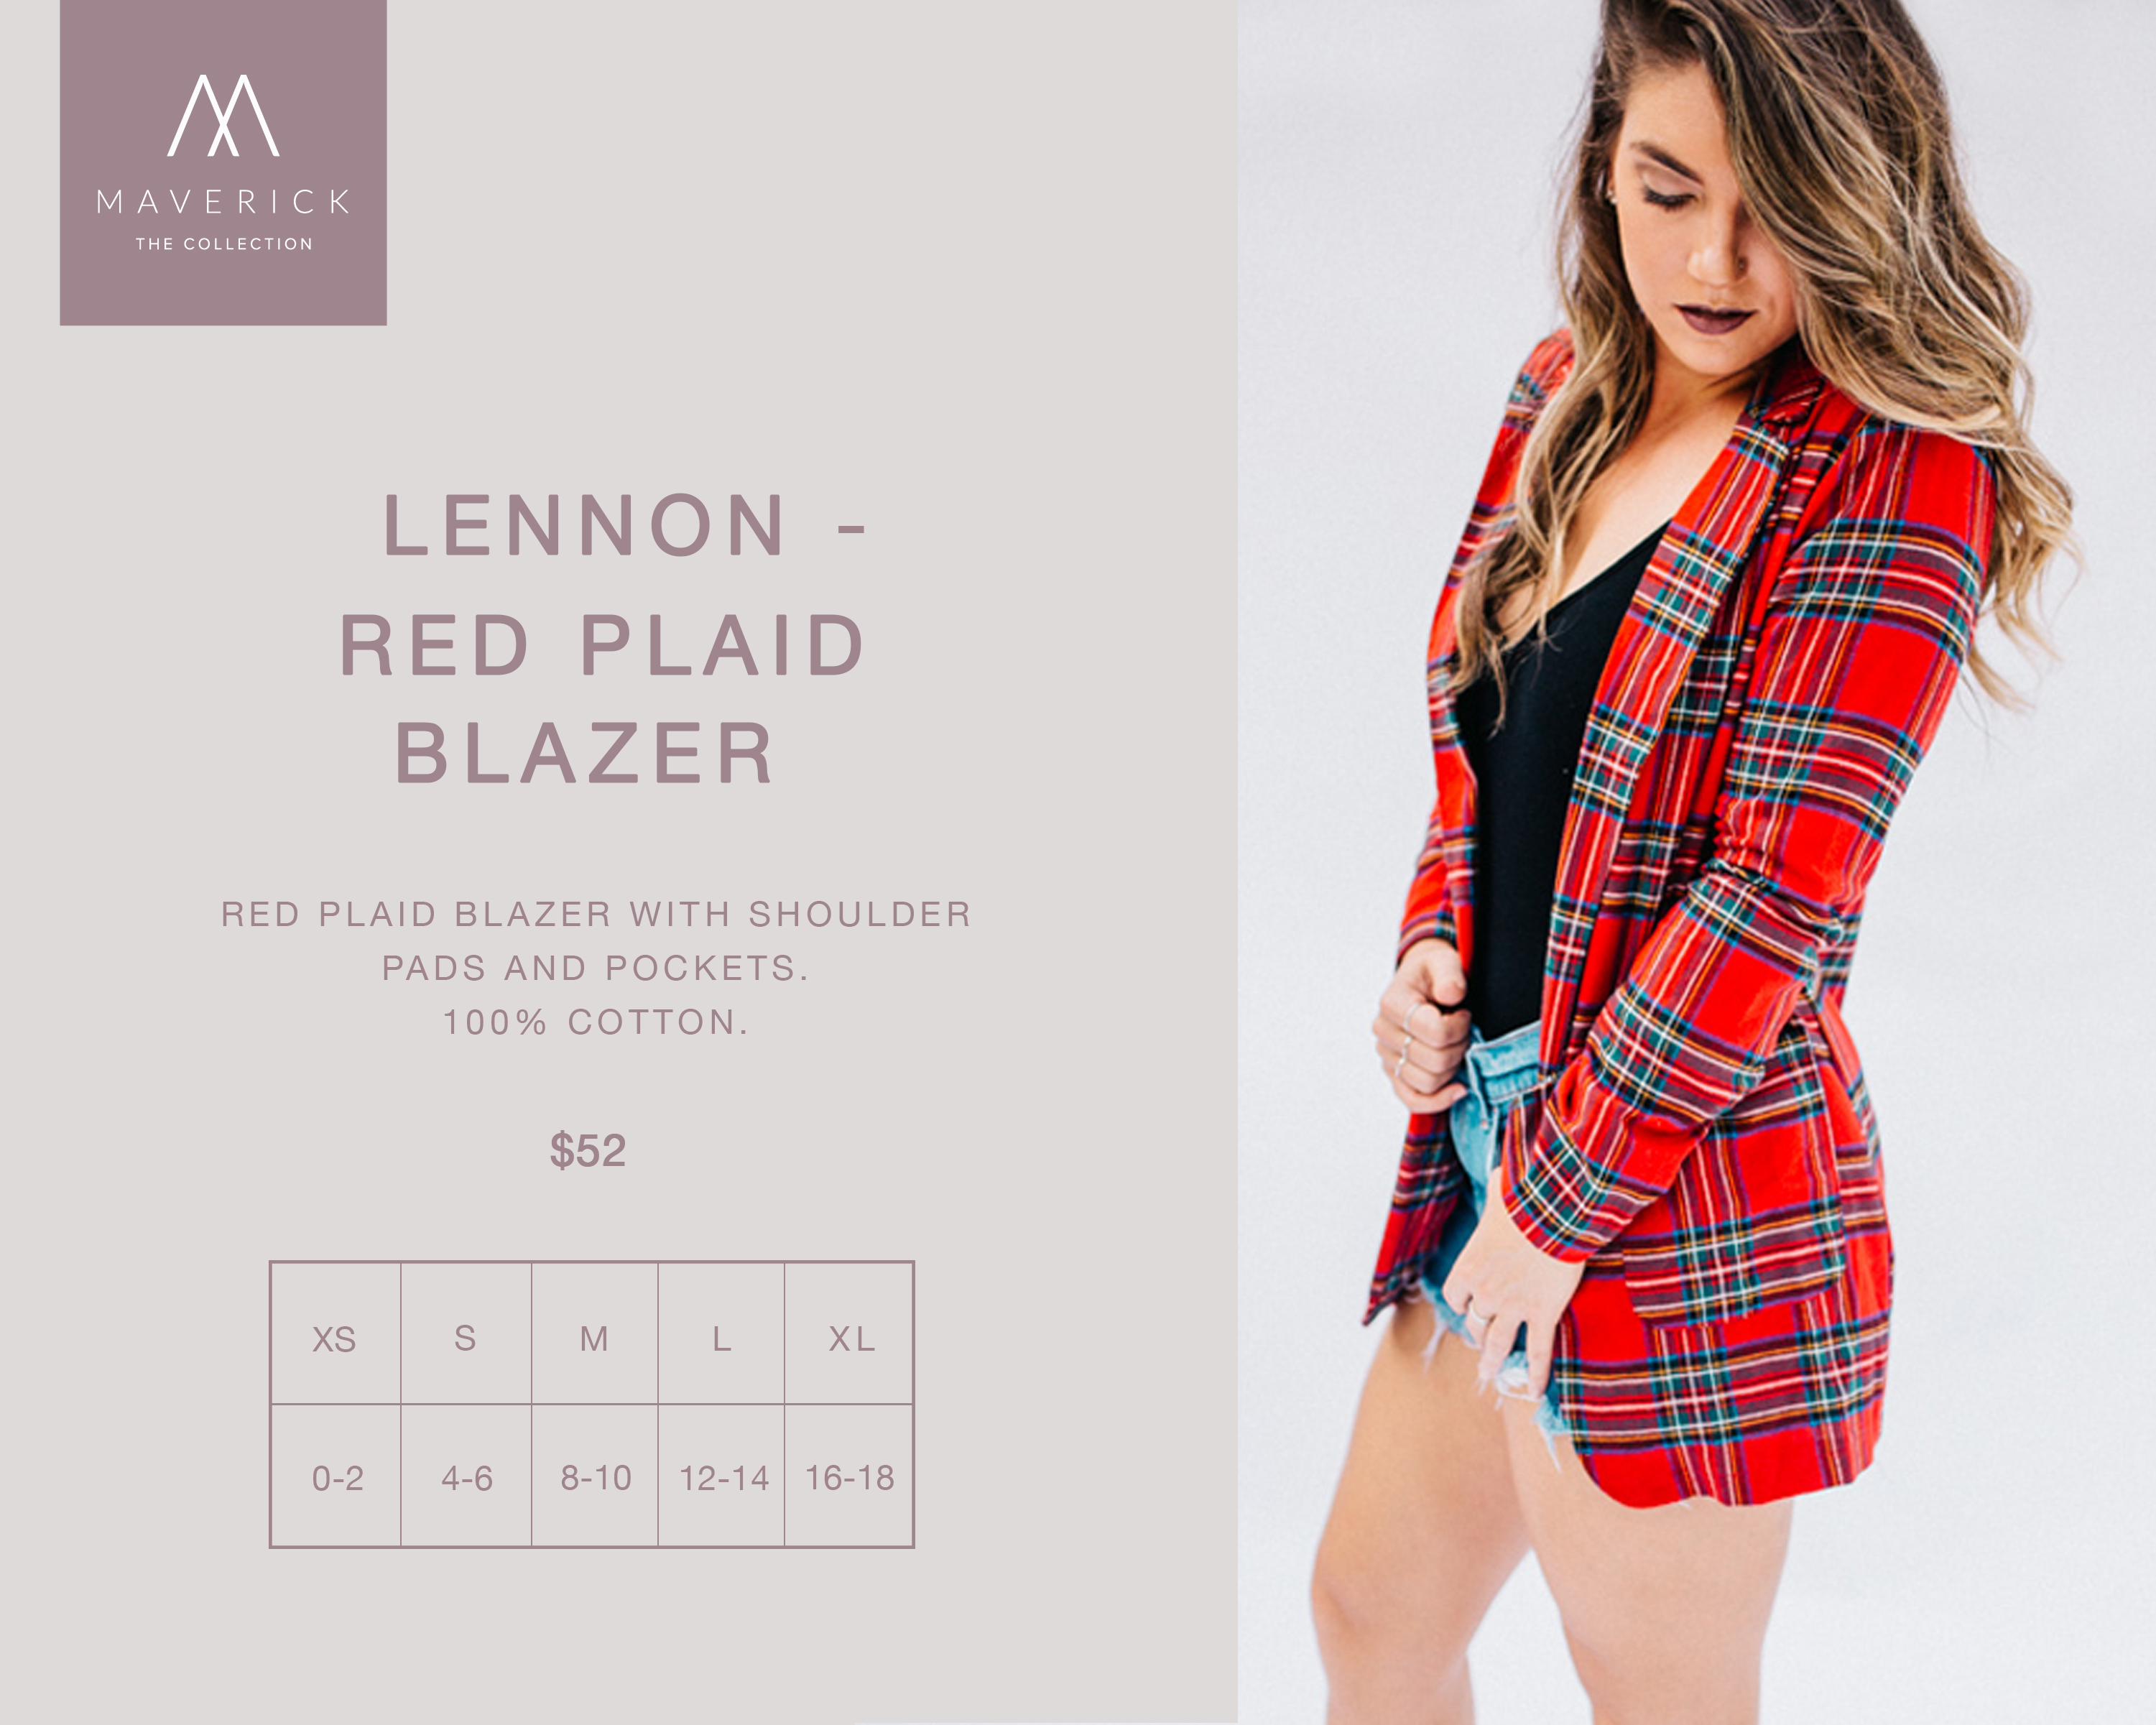 Image for RED PLAID